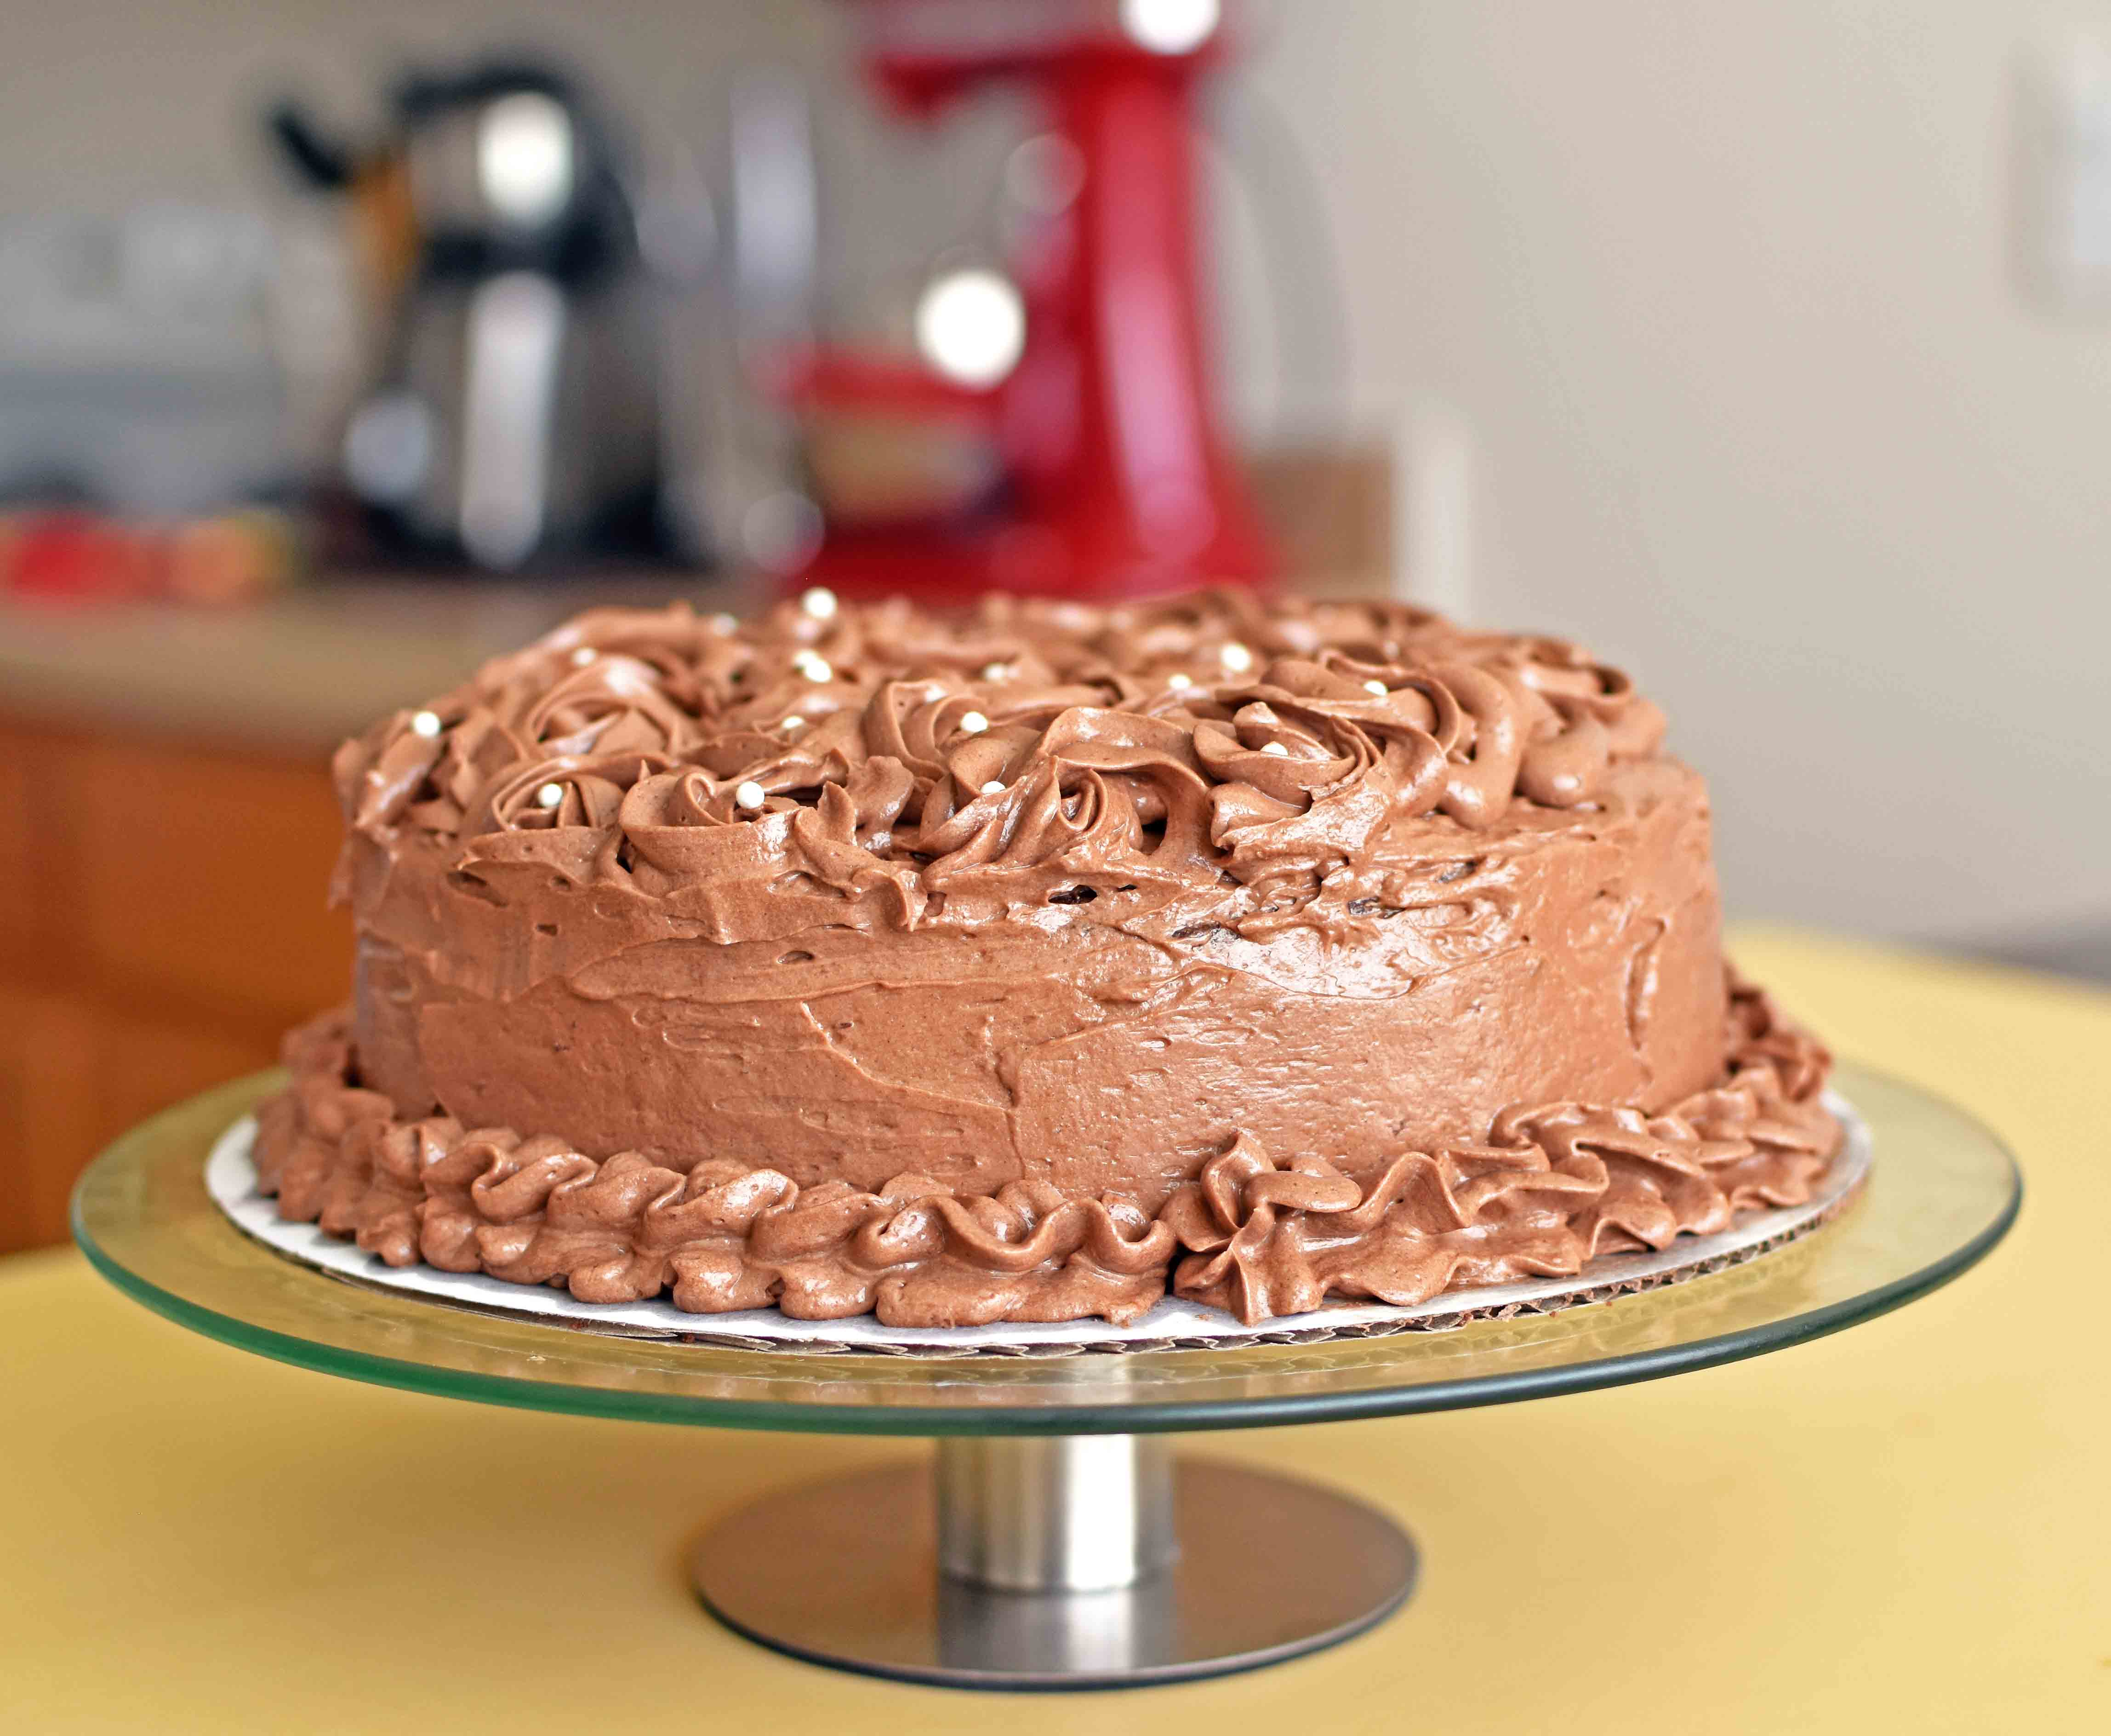 Chocolate Cake with Chocolate Frosting - Pepper Delight #recipe #cake #dessert